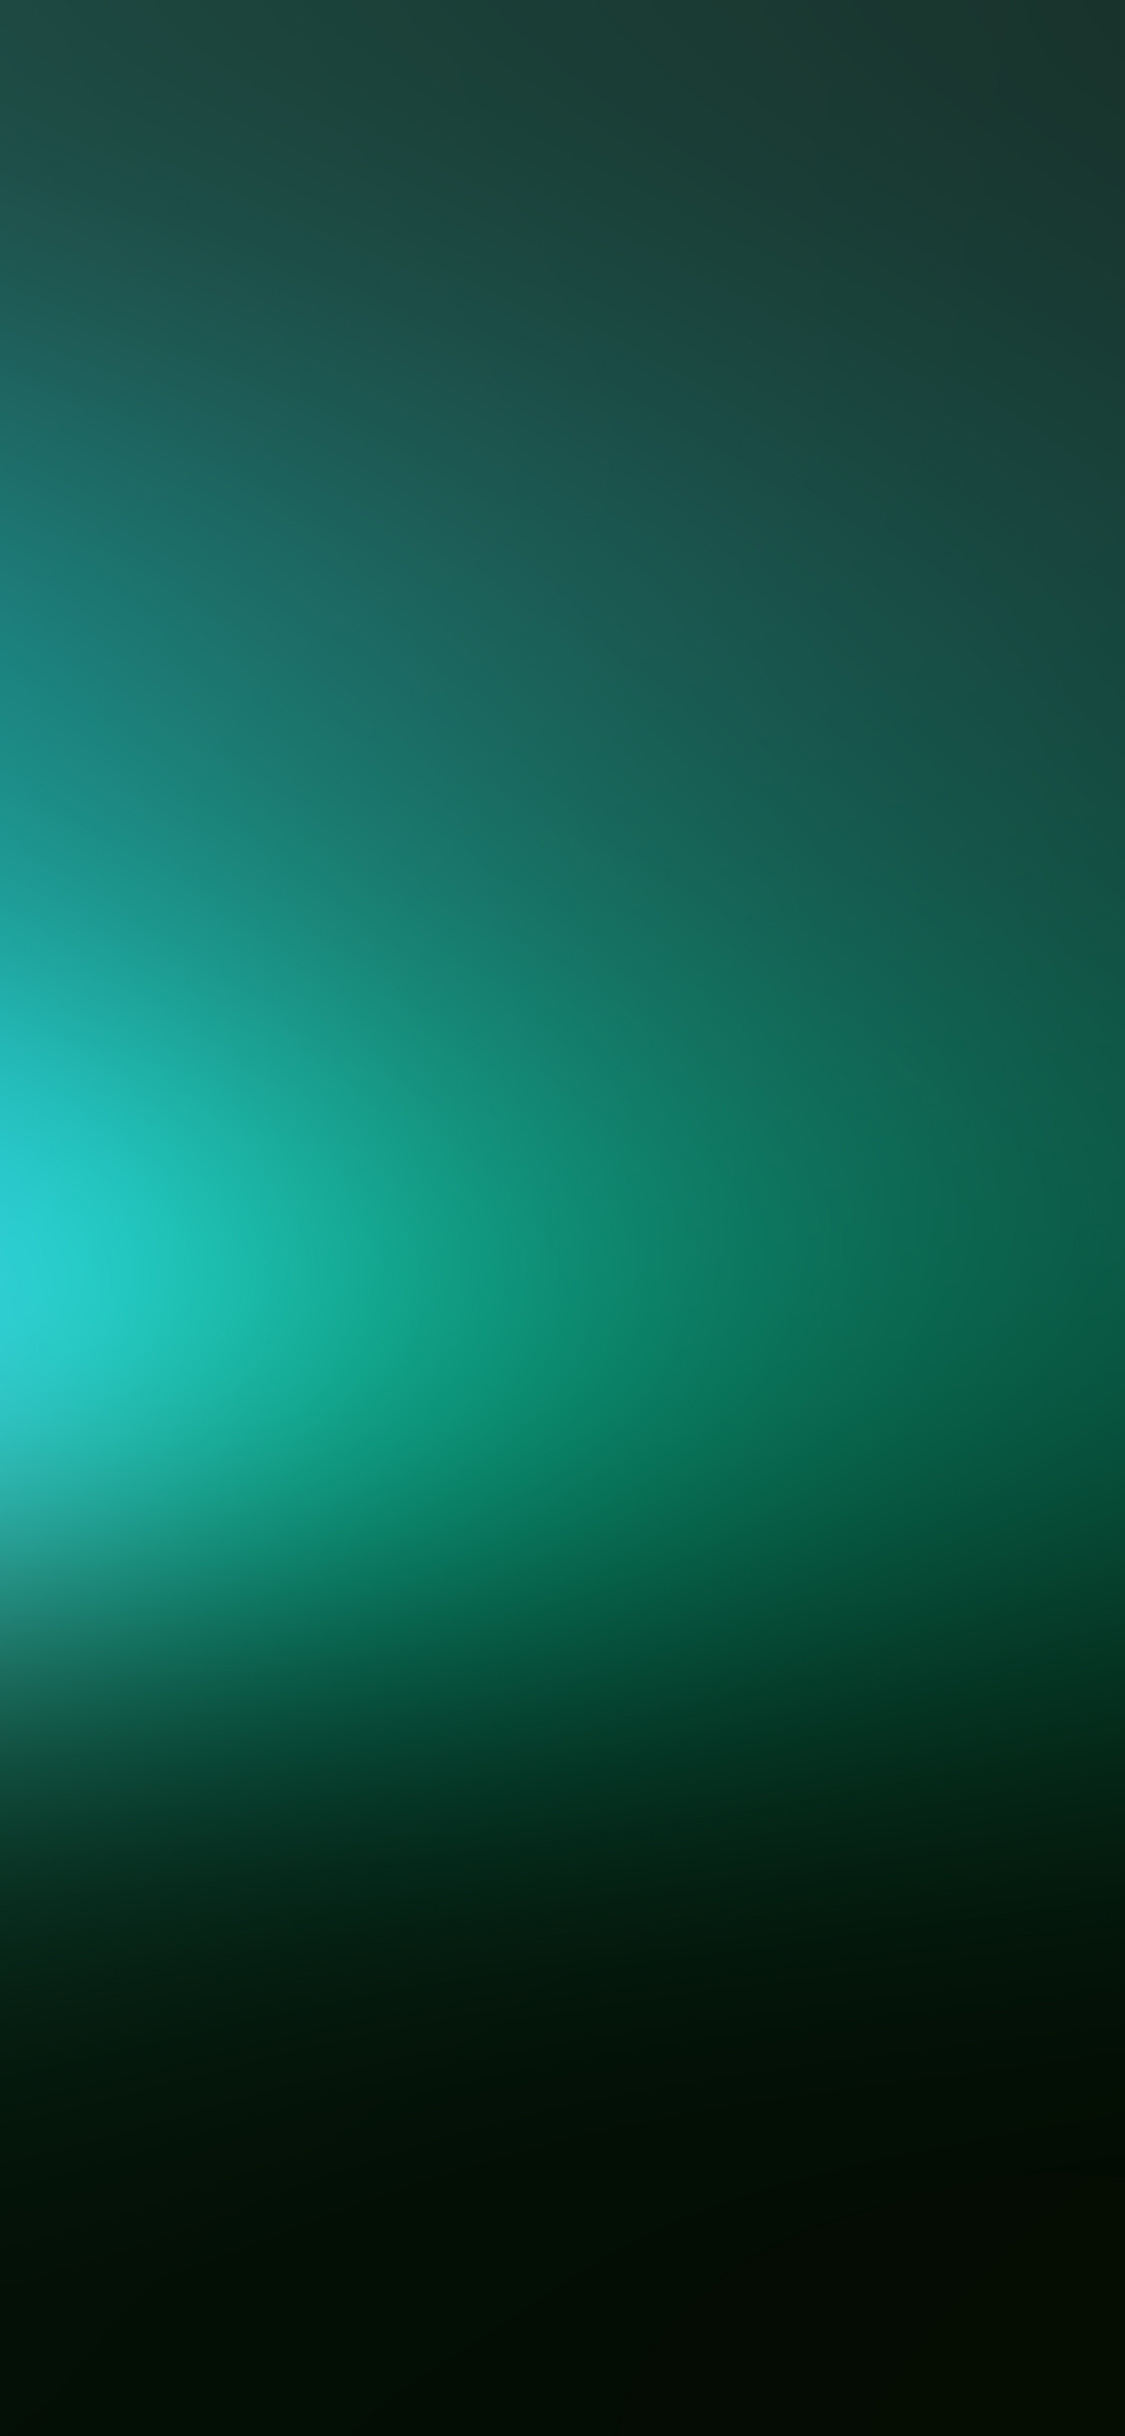 Iphonexpapers Com Iphone X Wallpaper Si39 Blue Green Friday Night Live Gradation Blur